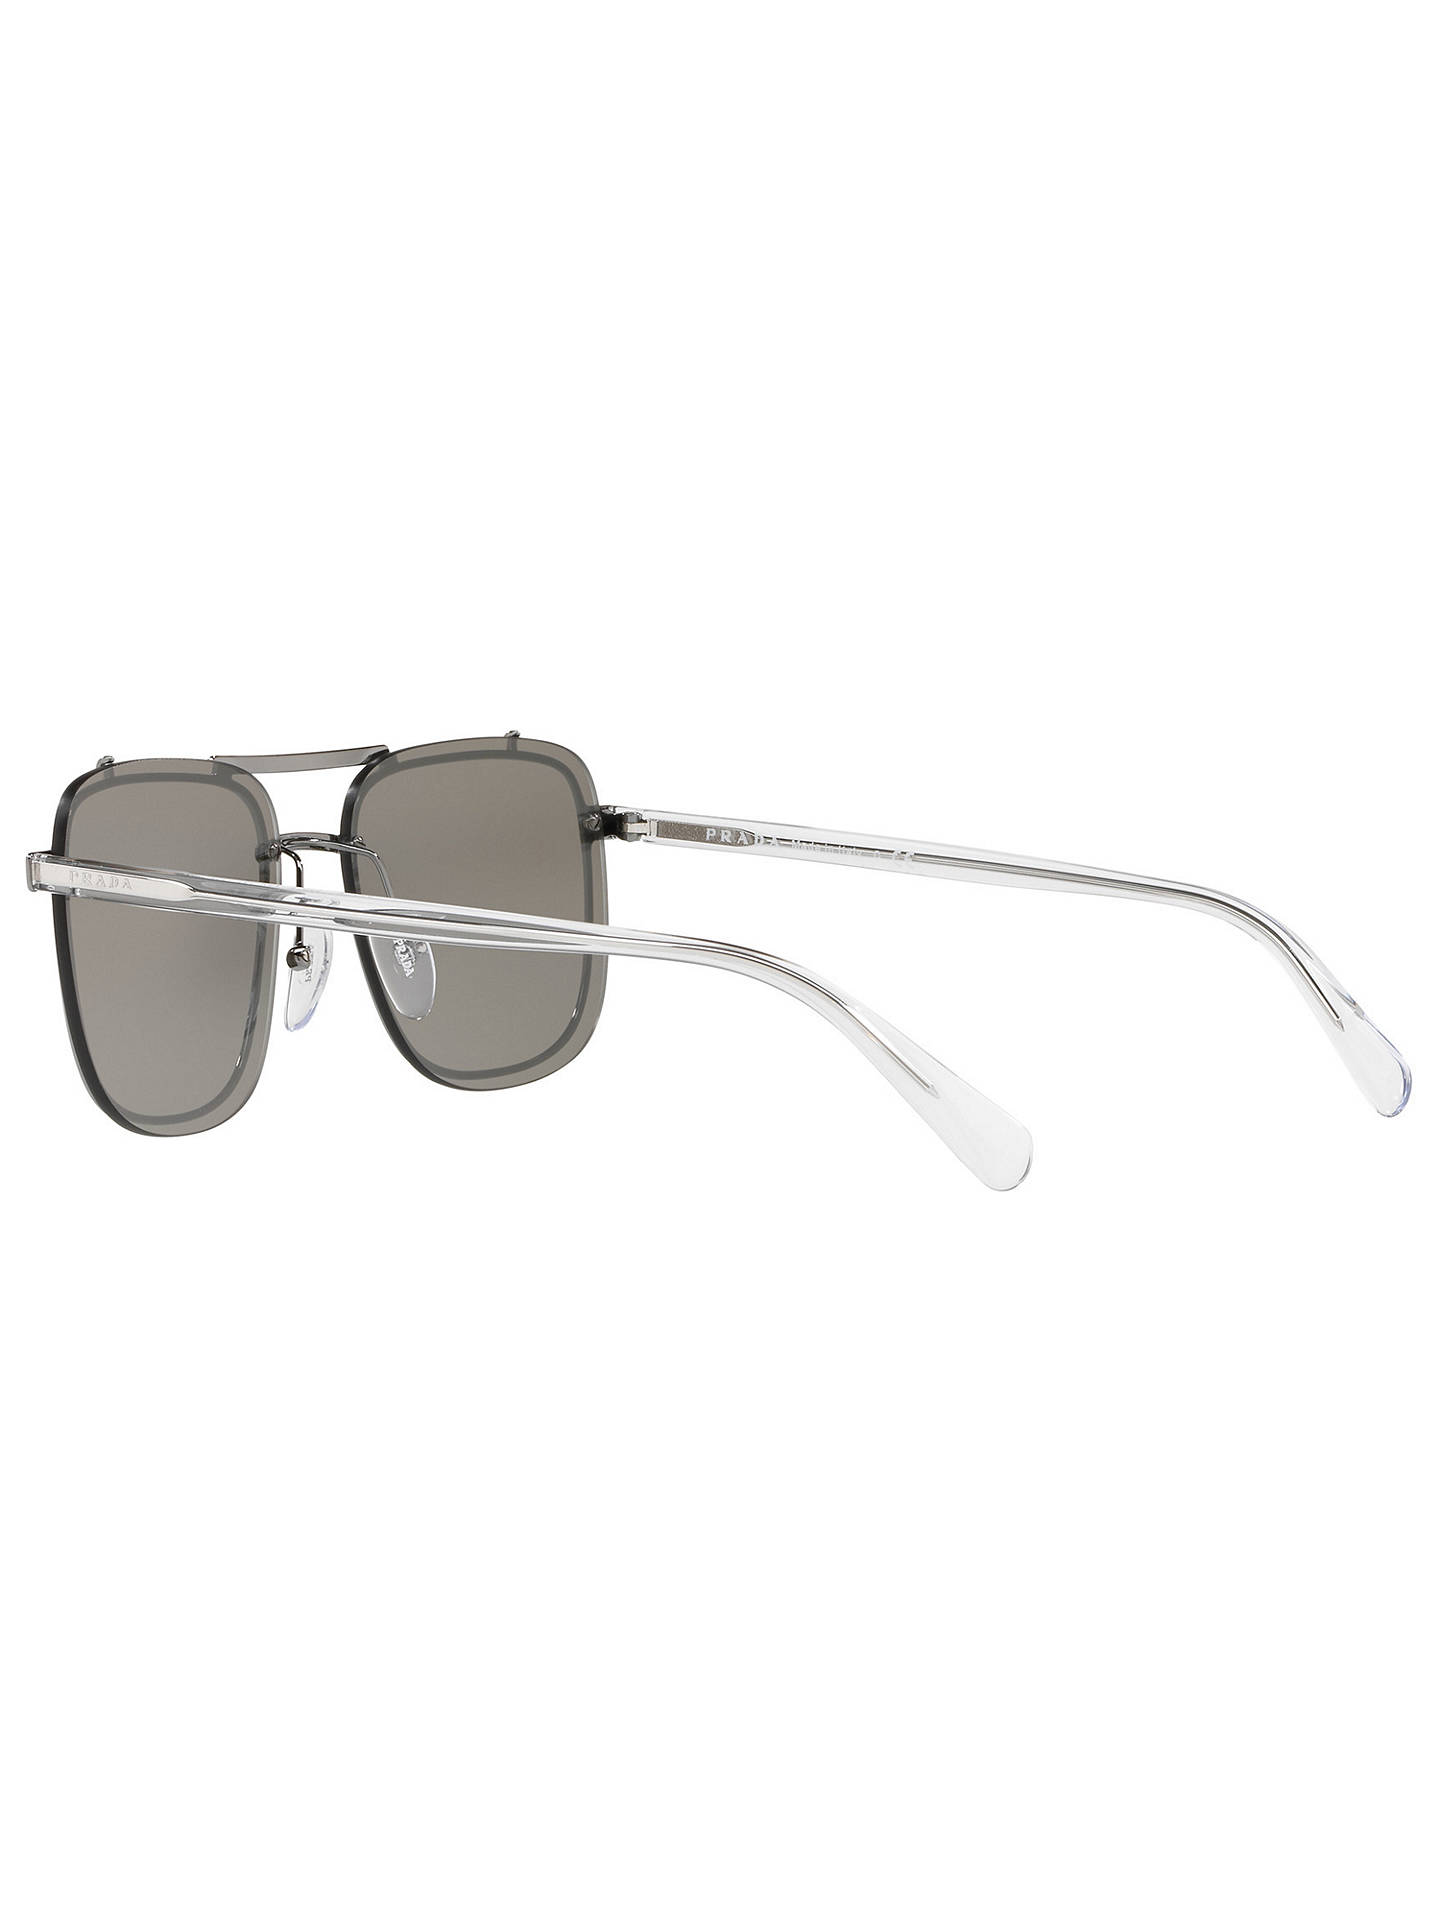 BuyPrada PR 59US Women's Square Sunglasses, Gunmetal Silver Online at johnlewis.com